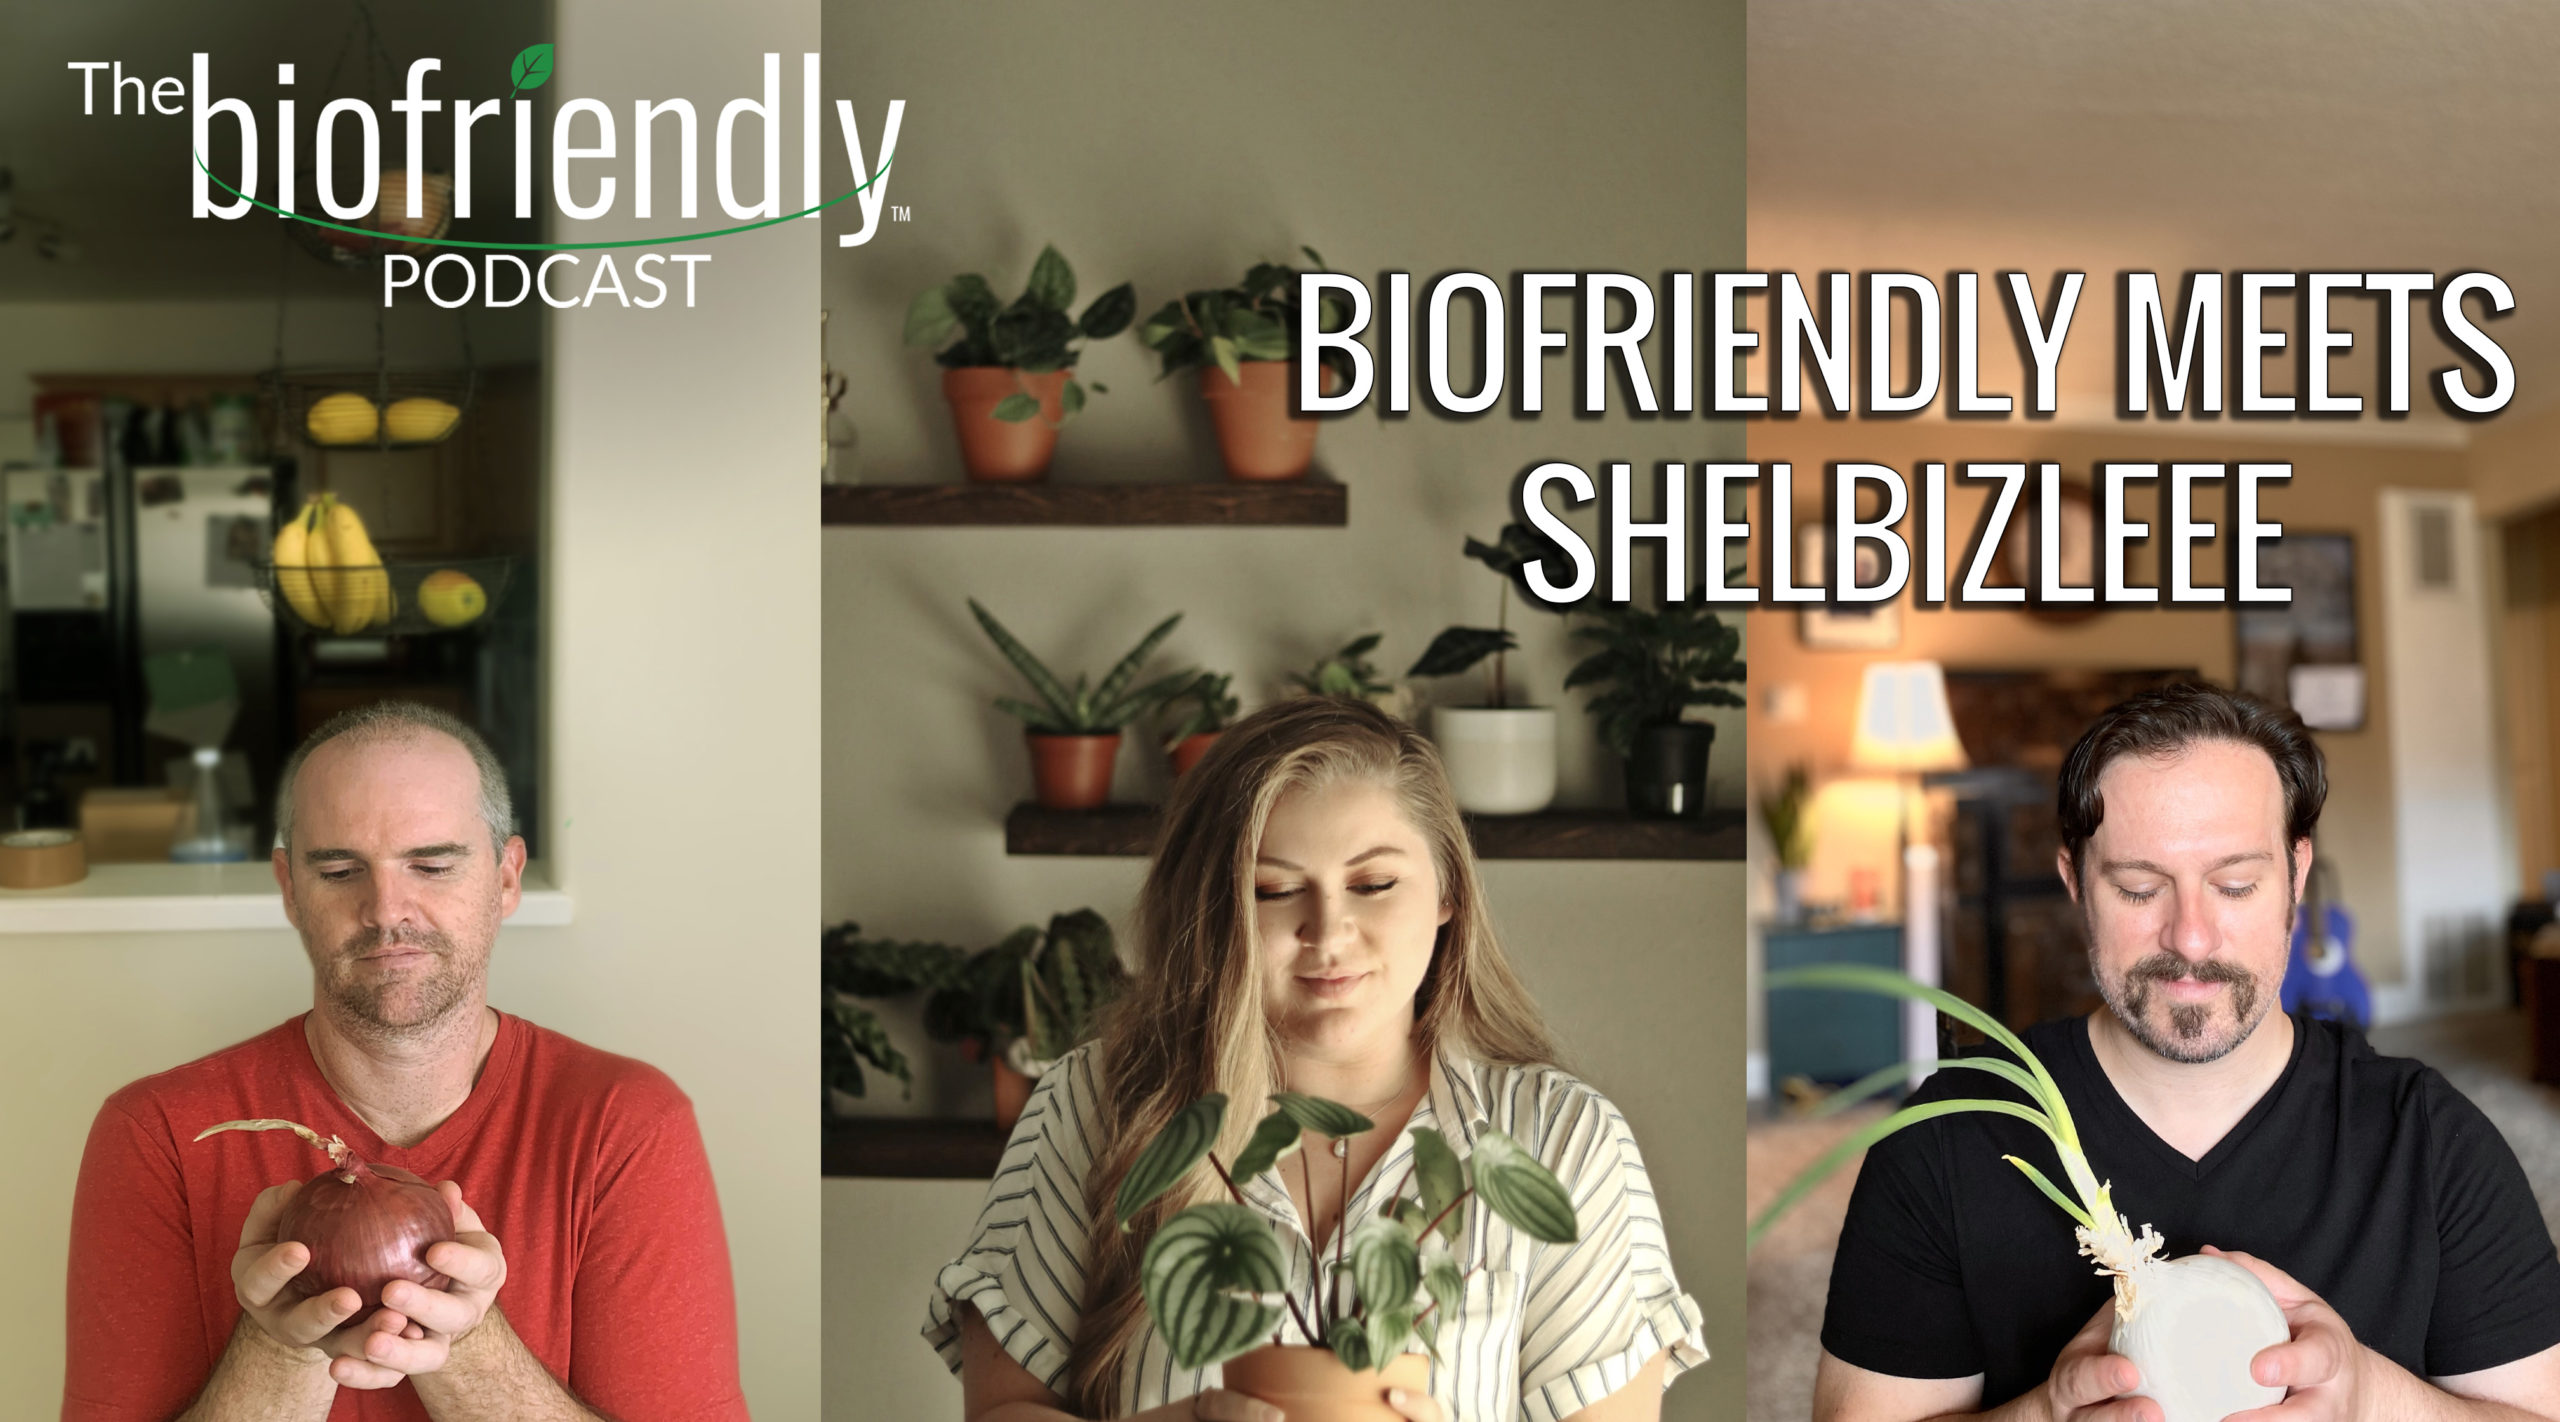 The Biofriendly Podcast - Episode 61 - Biofriendly Meets Shelbizleee